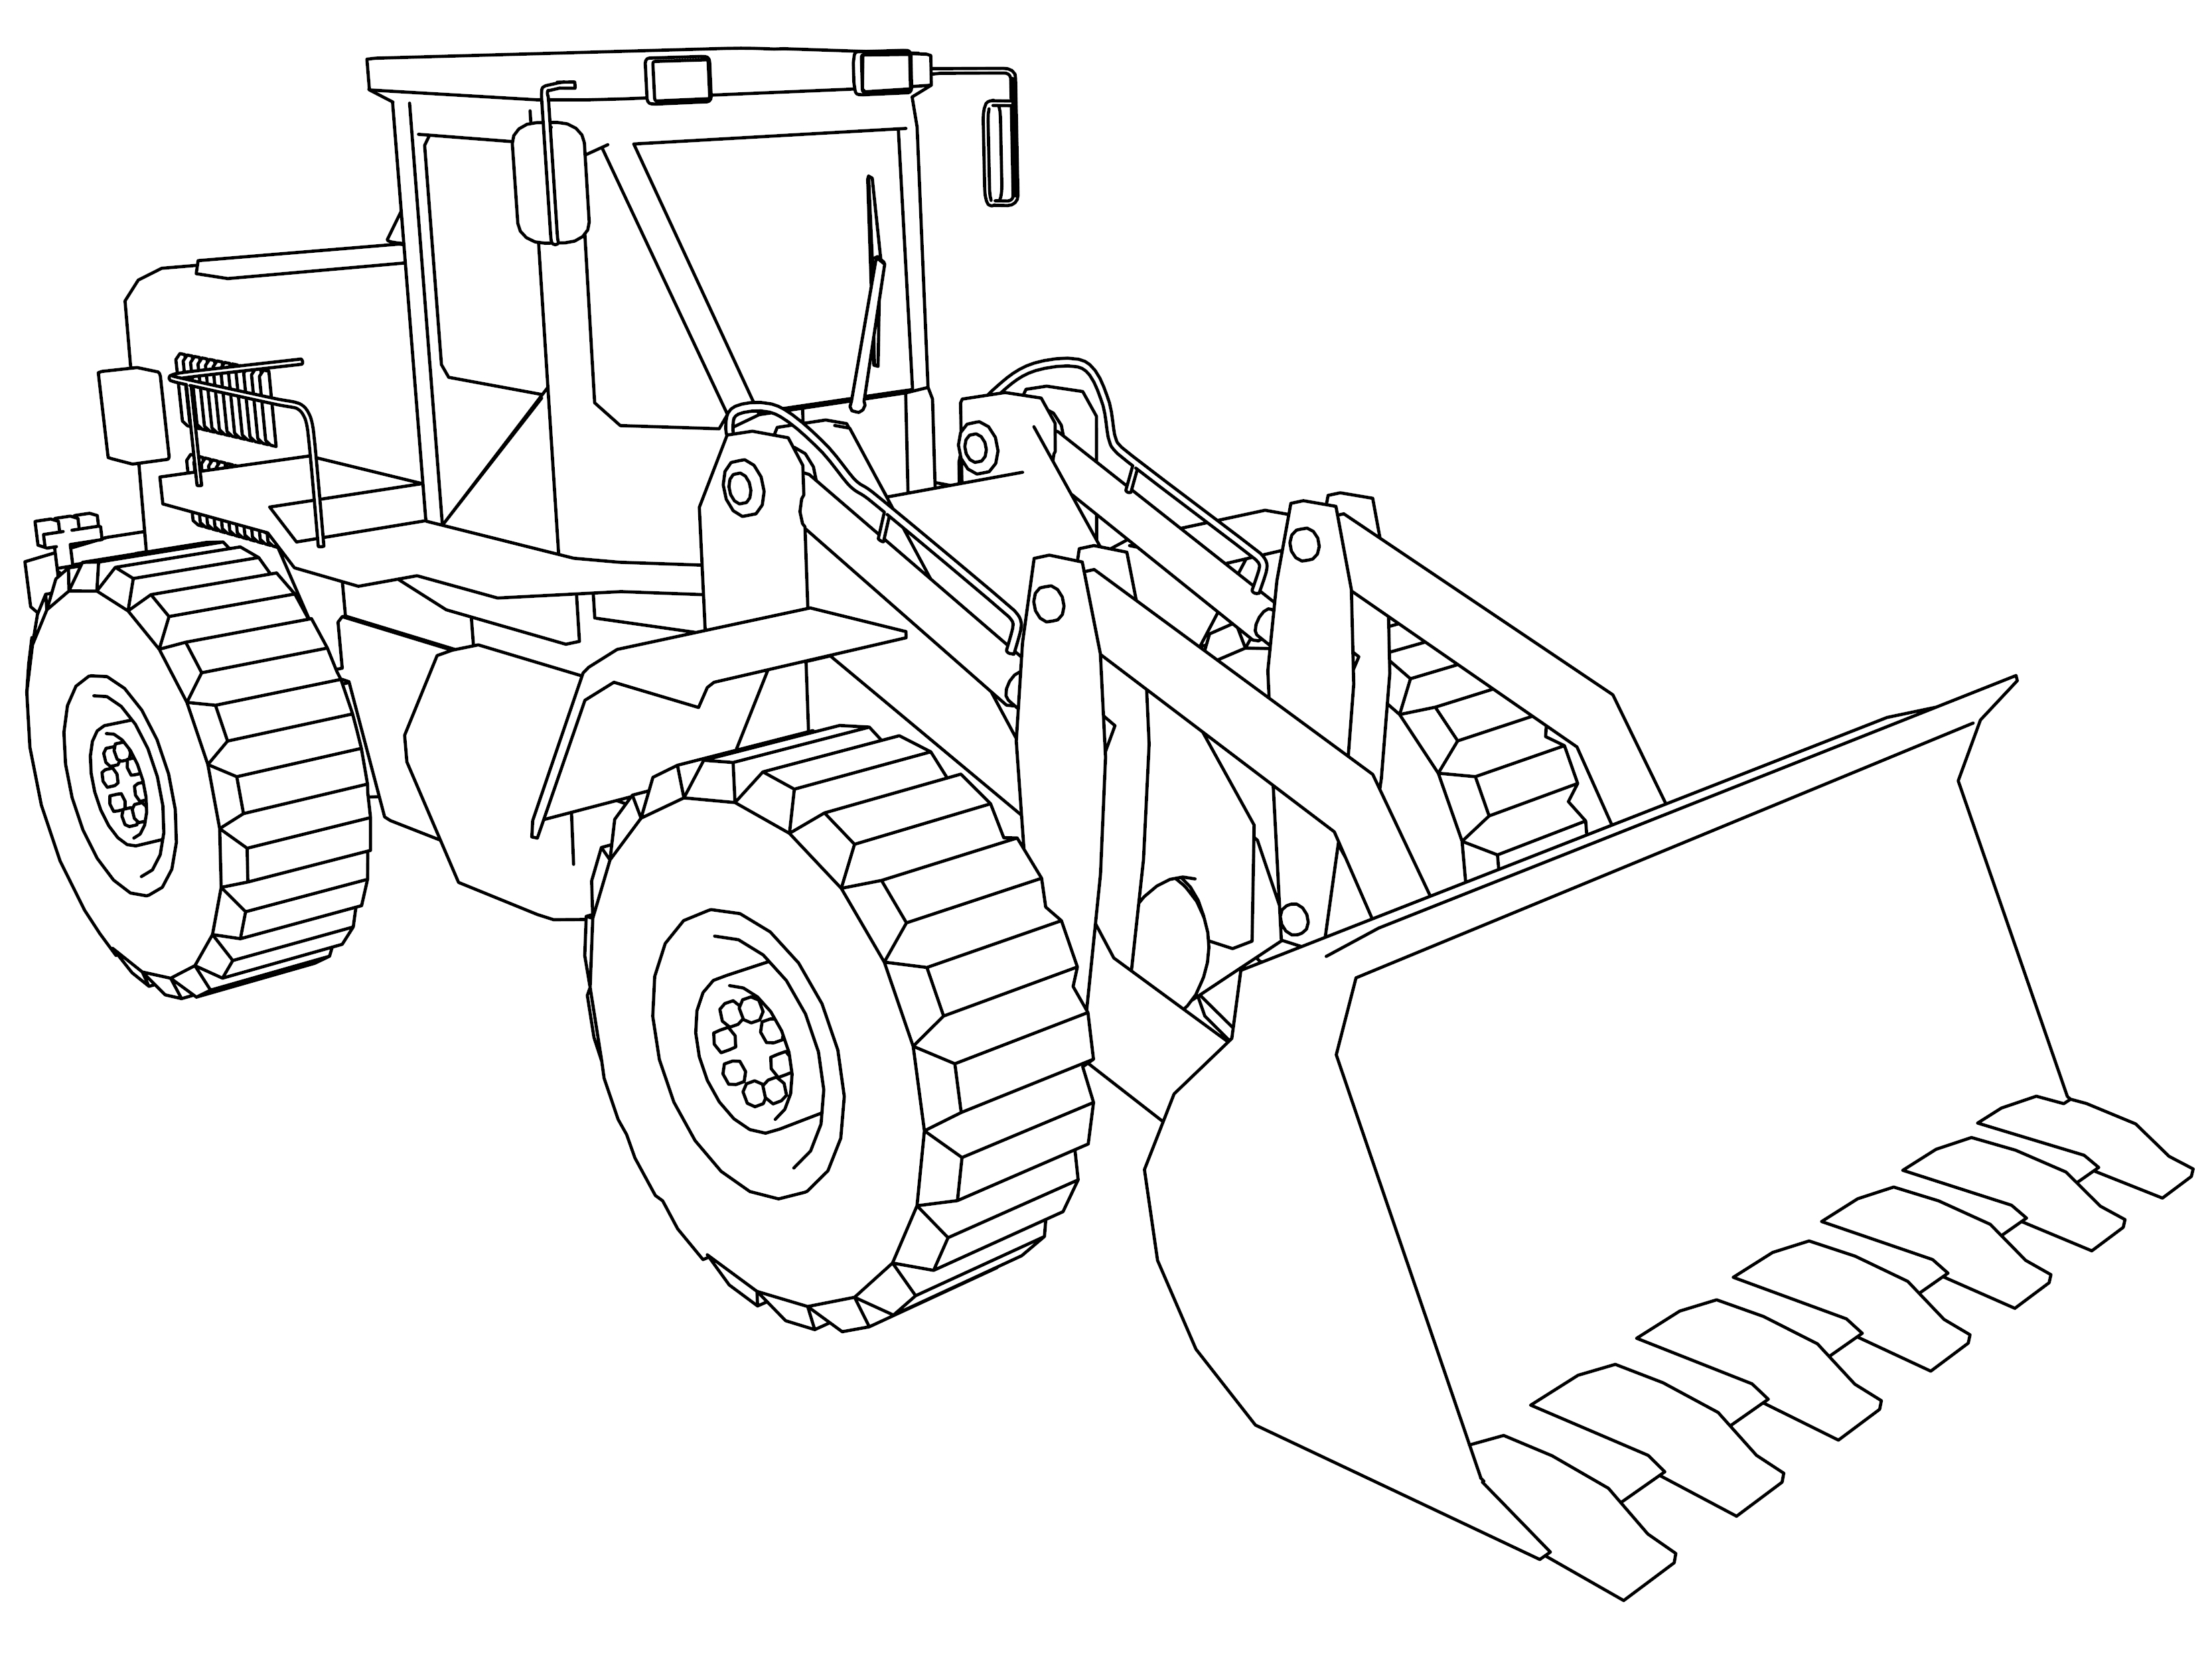 coloring pages for boys - construction coloring pages